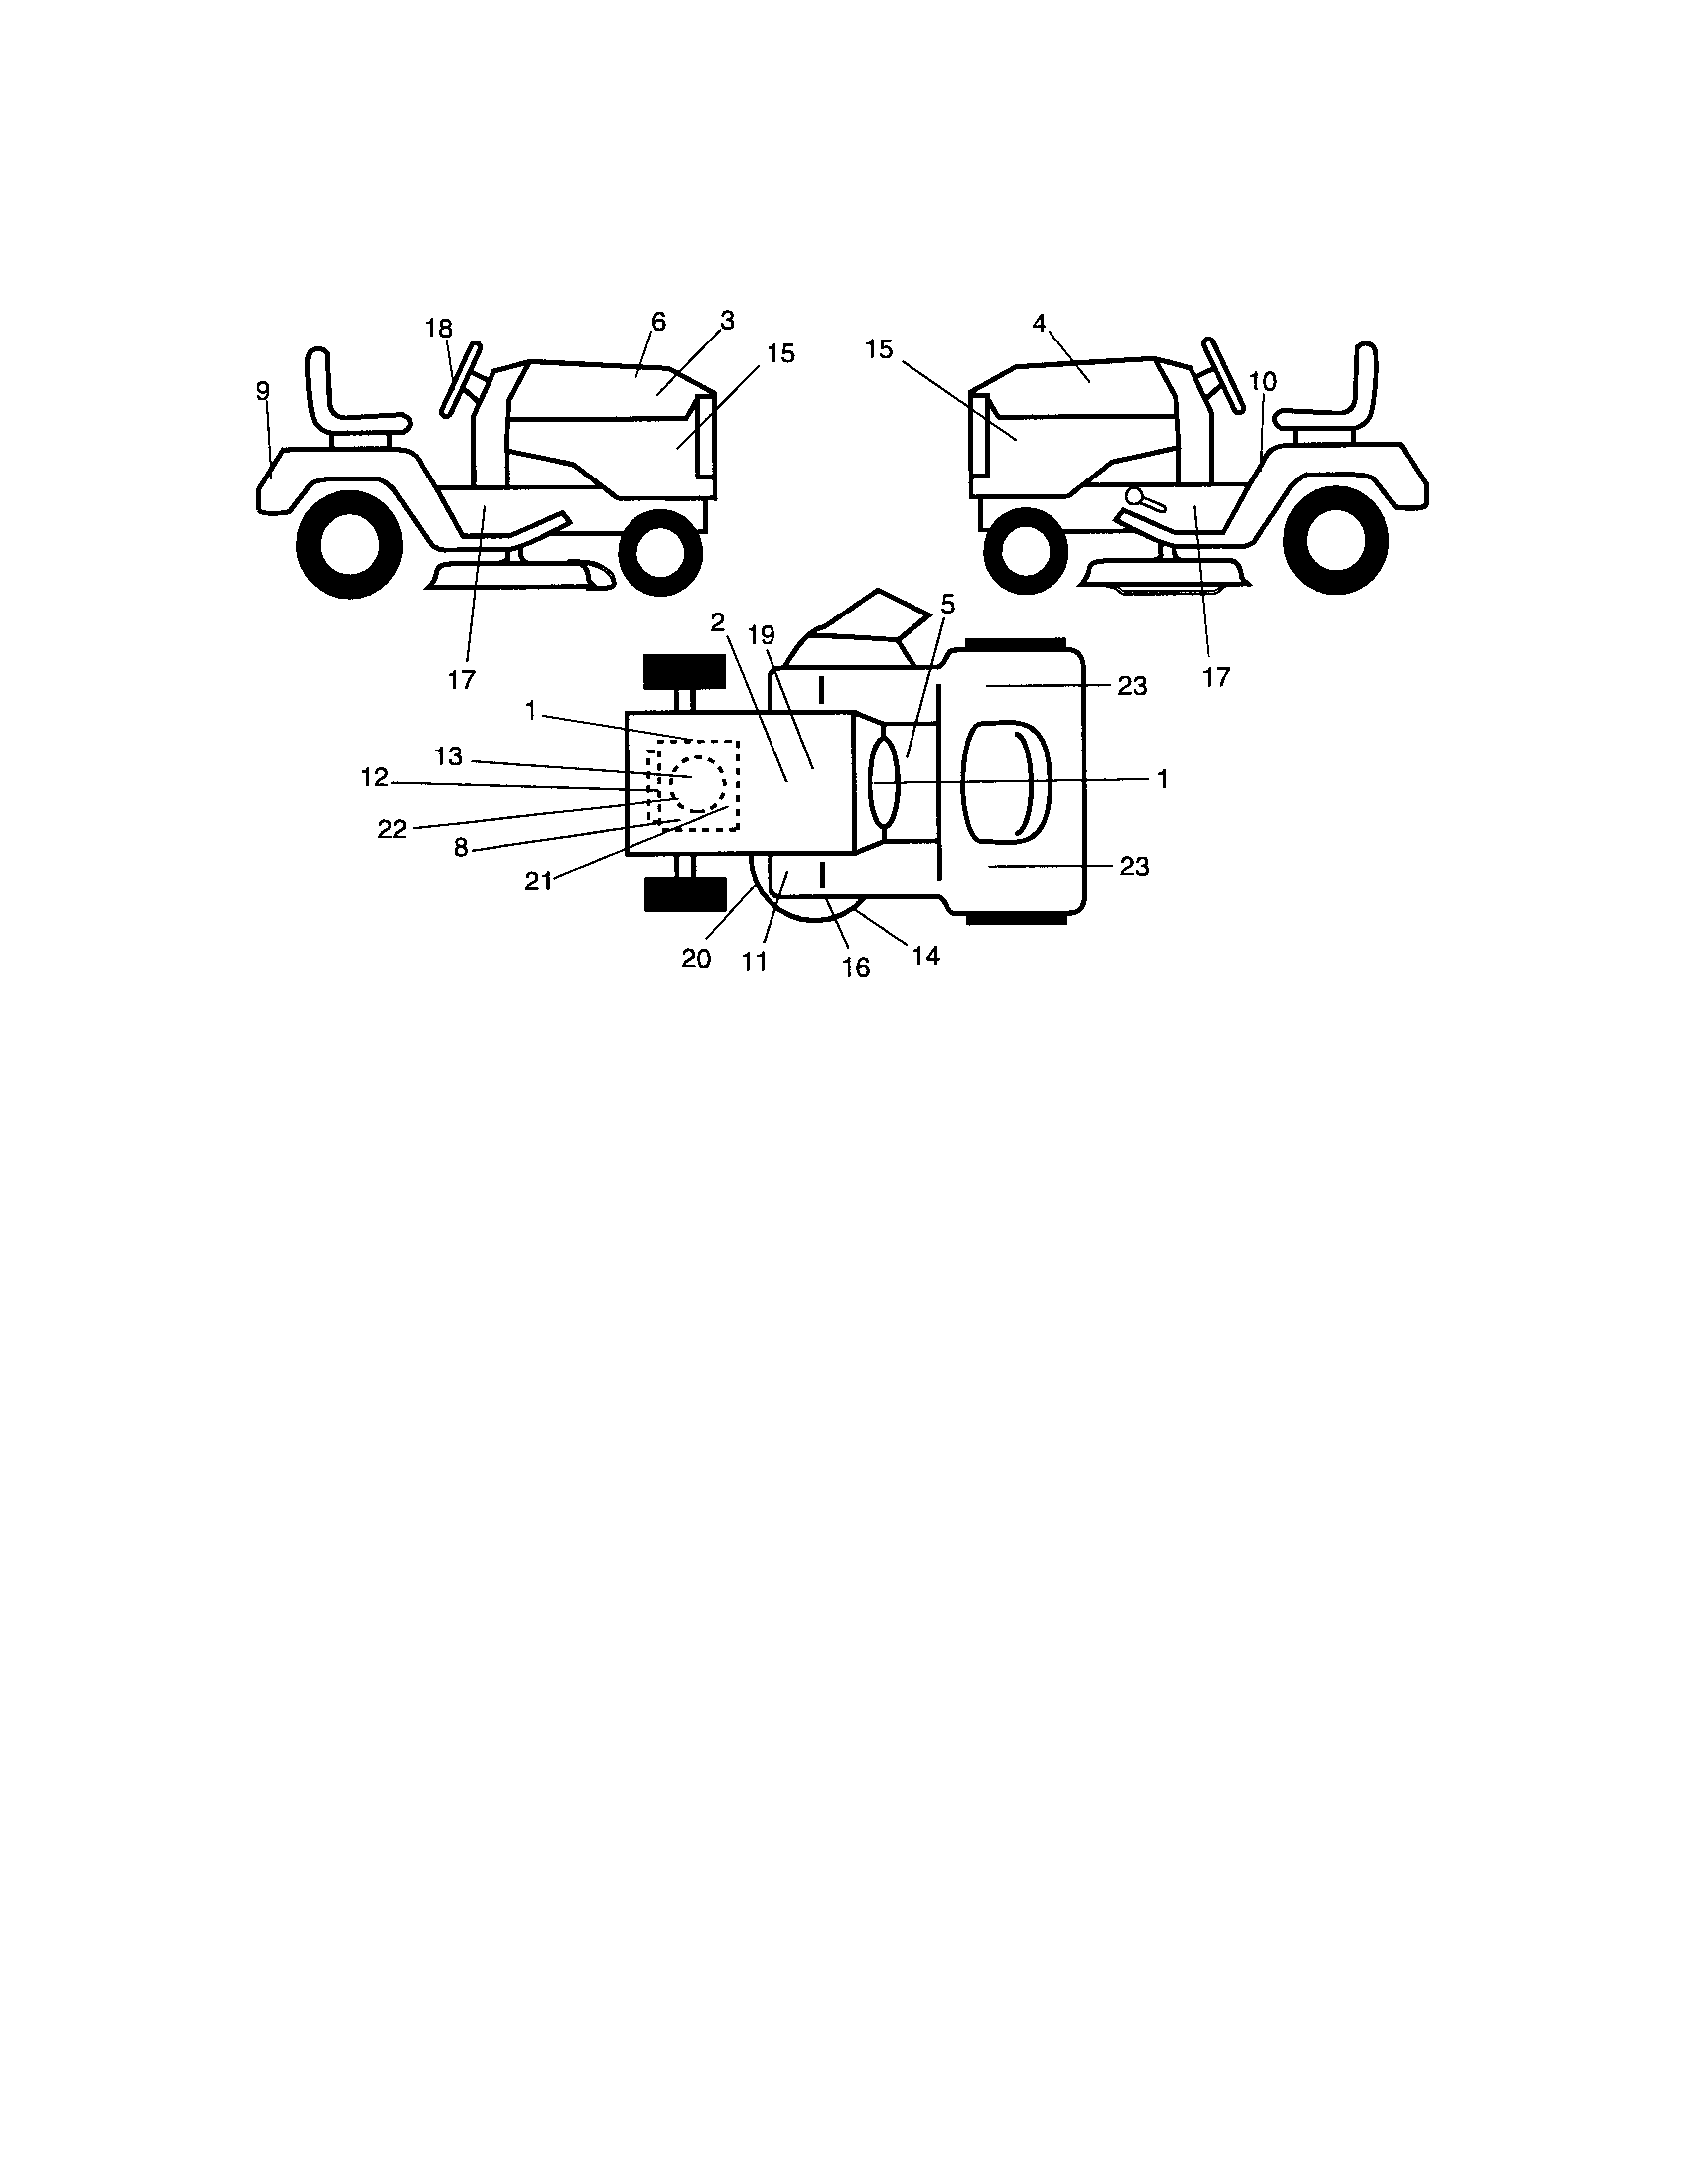 Craftsman Model 917276360 Lawn Tractor Genuine Parts Briggs And Stratton Engine Diagram List For